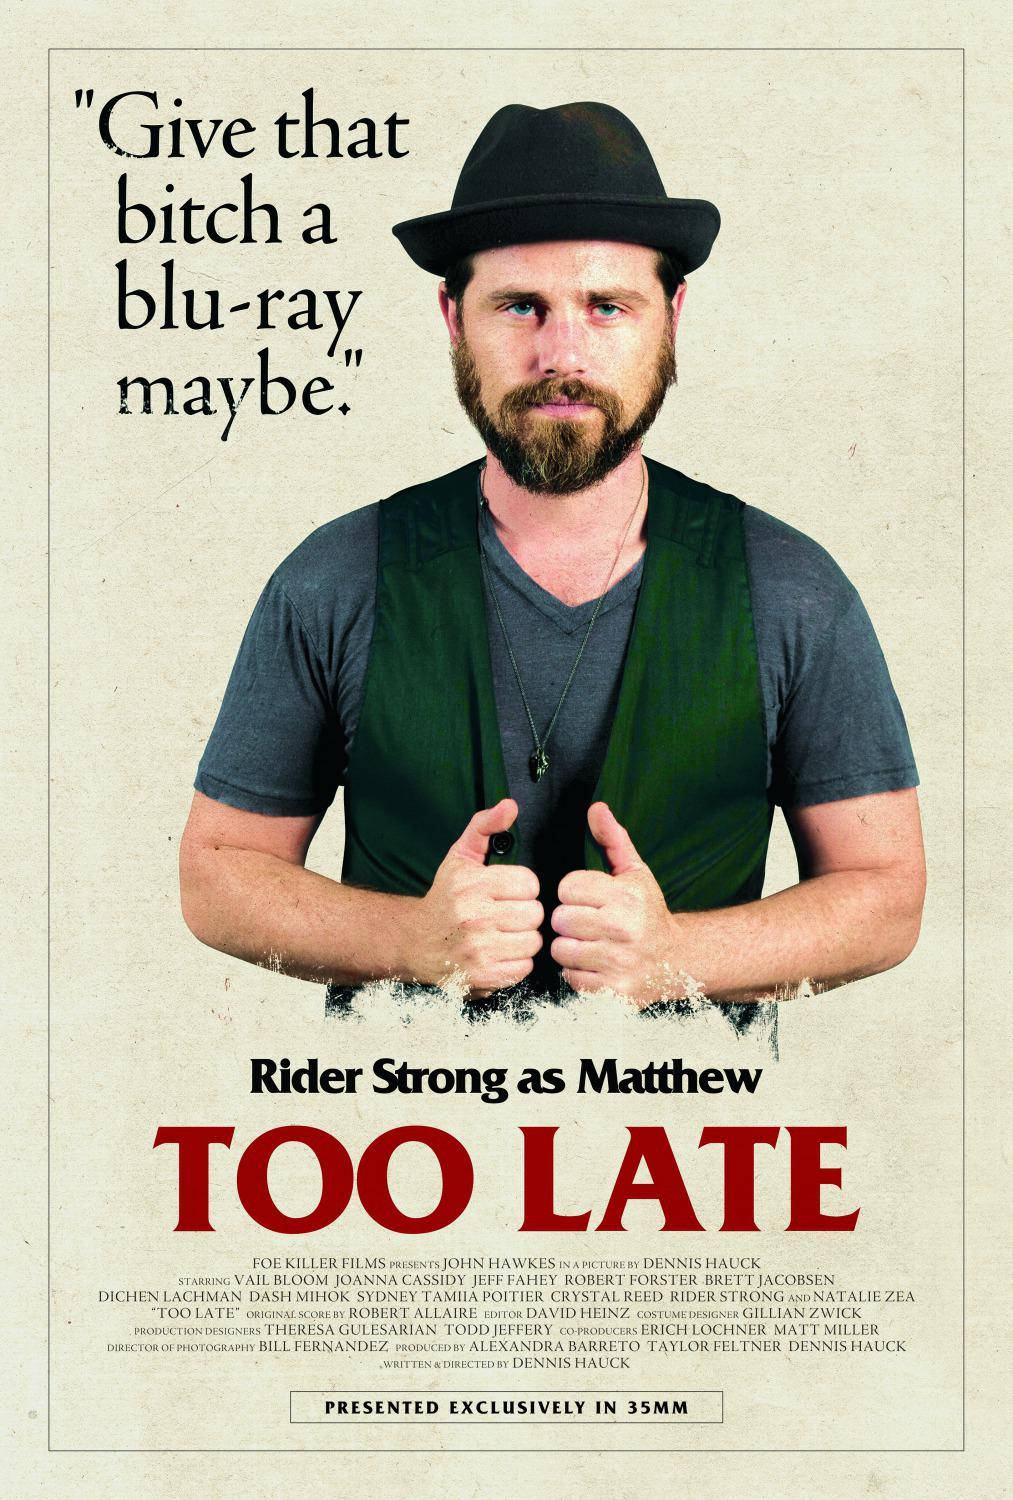 Troppo Tardi - Too Late - Rider Strong as Matthew